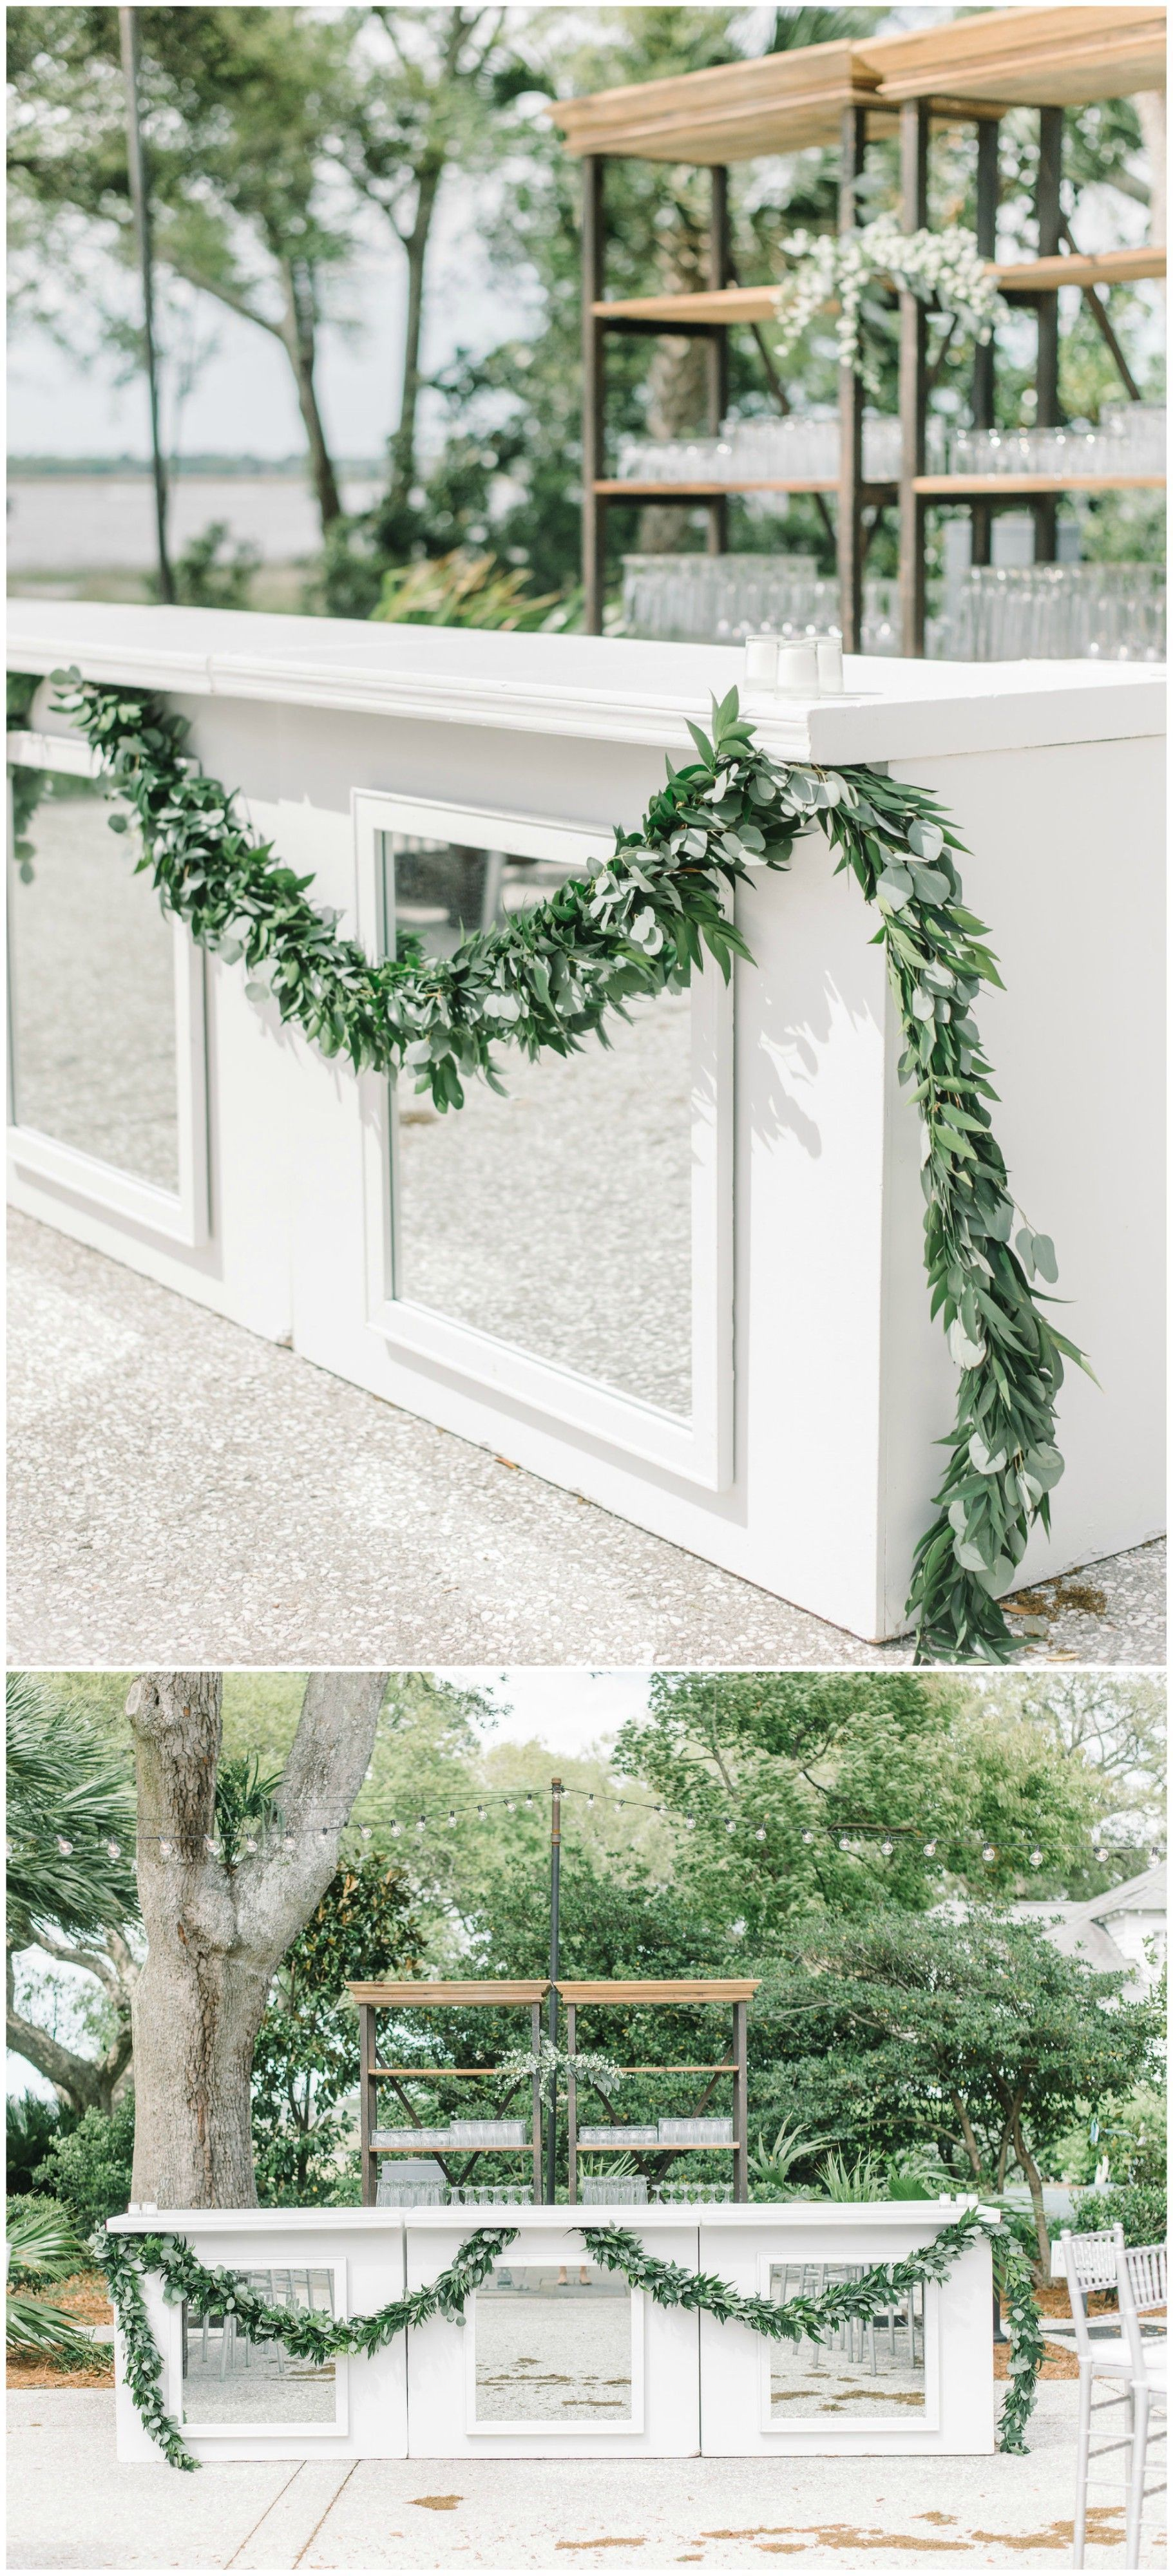 Wedding decorations natural  The Smarter Way to Wed  Wedding  Pinterest  Wedding Wedding